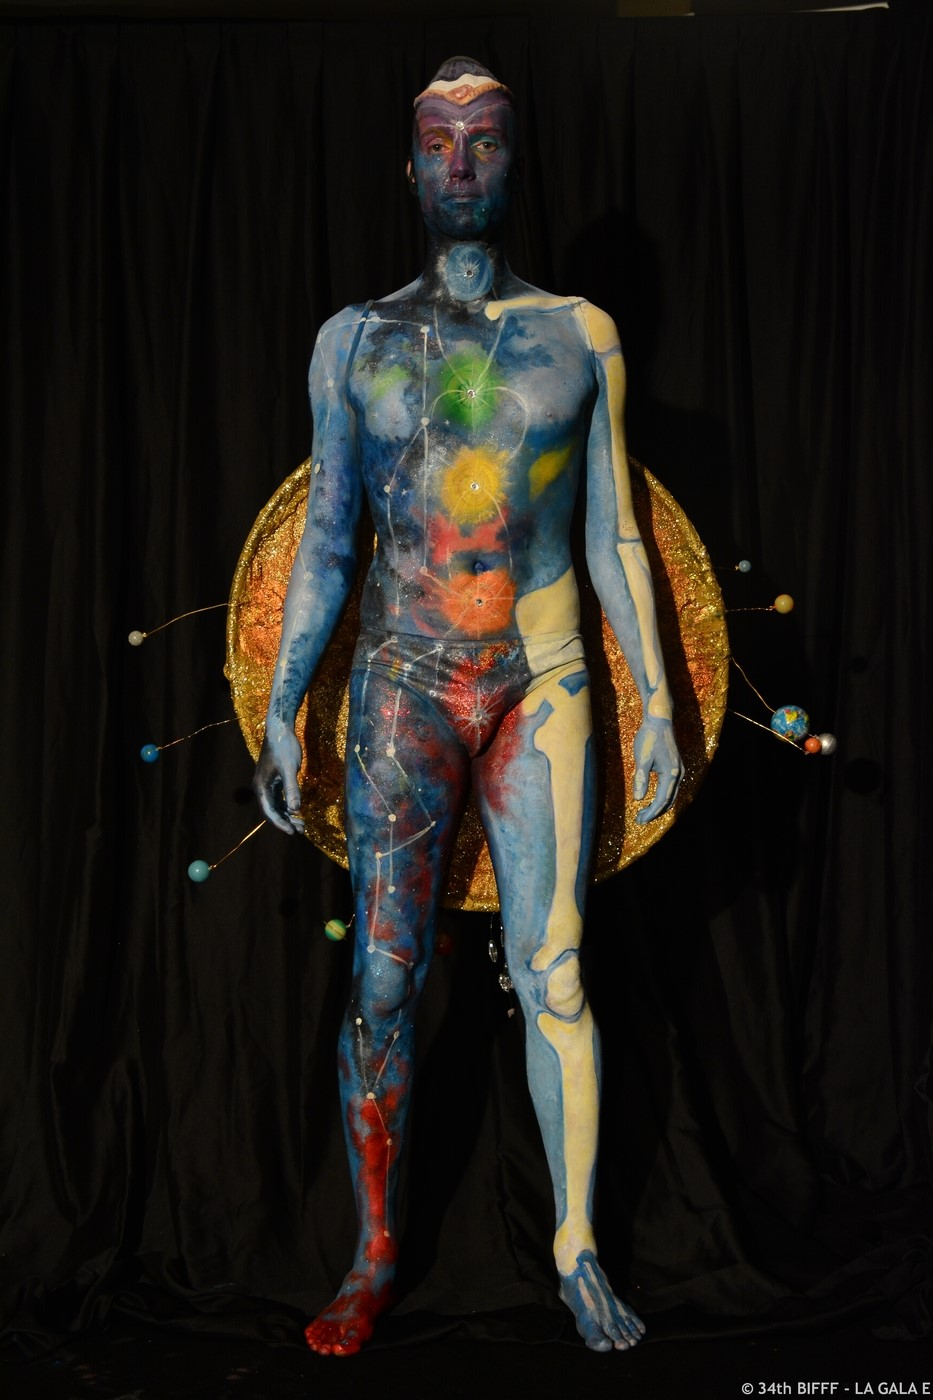 30th international body painting contest. Black Bedroom Furniture Sets. Home Design Ideas